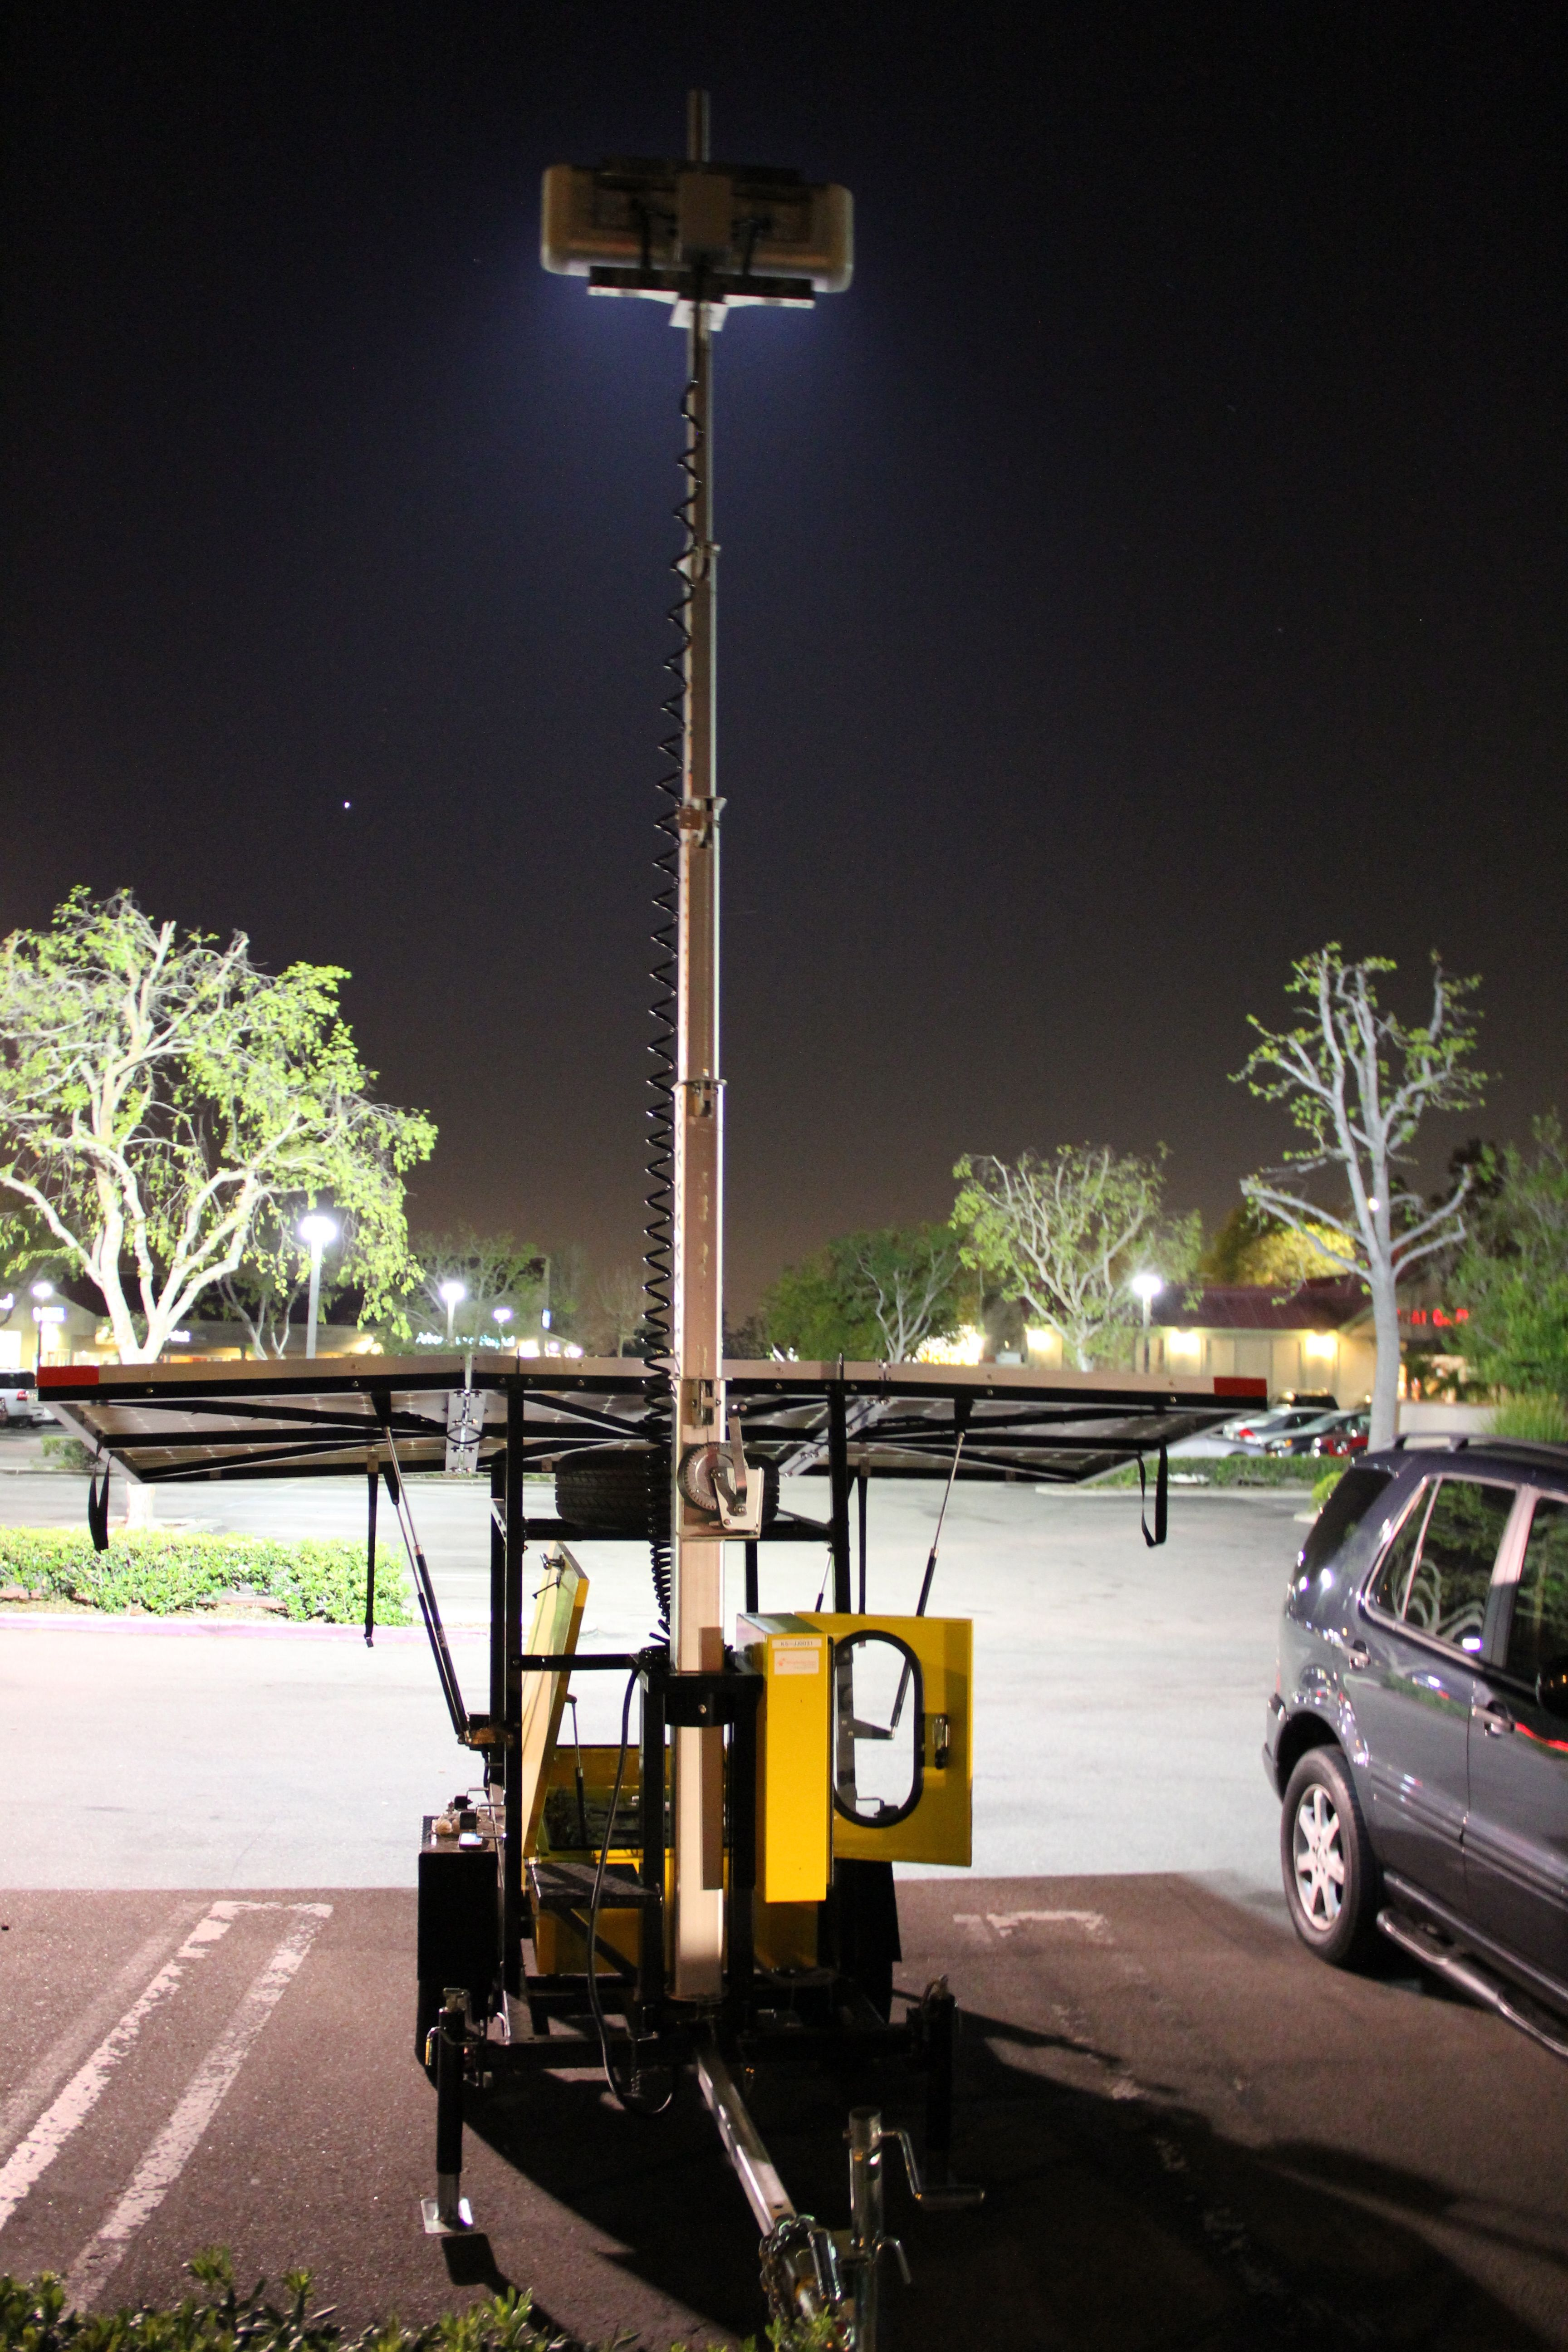 Solar Led Light Tower Lights A Irvine Shopping Mall Parking